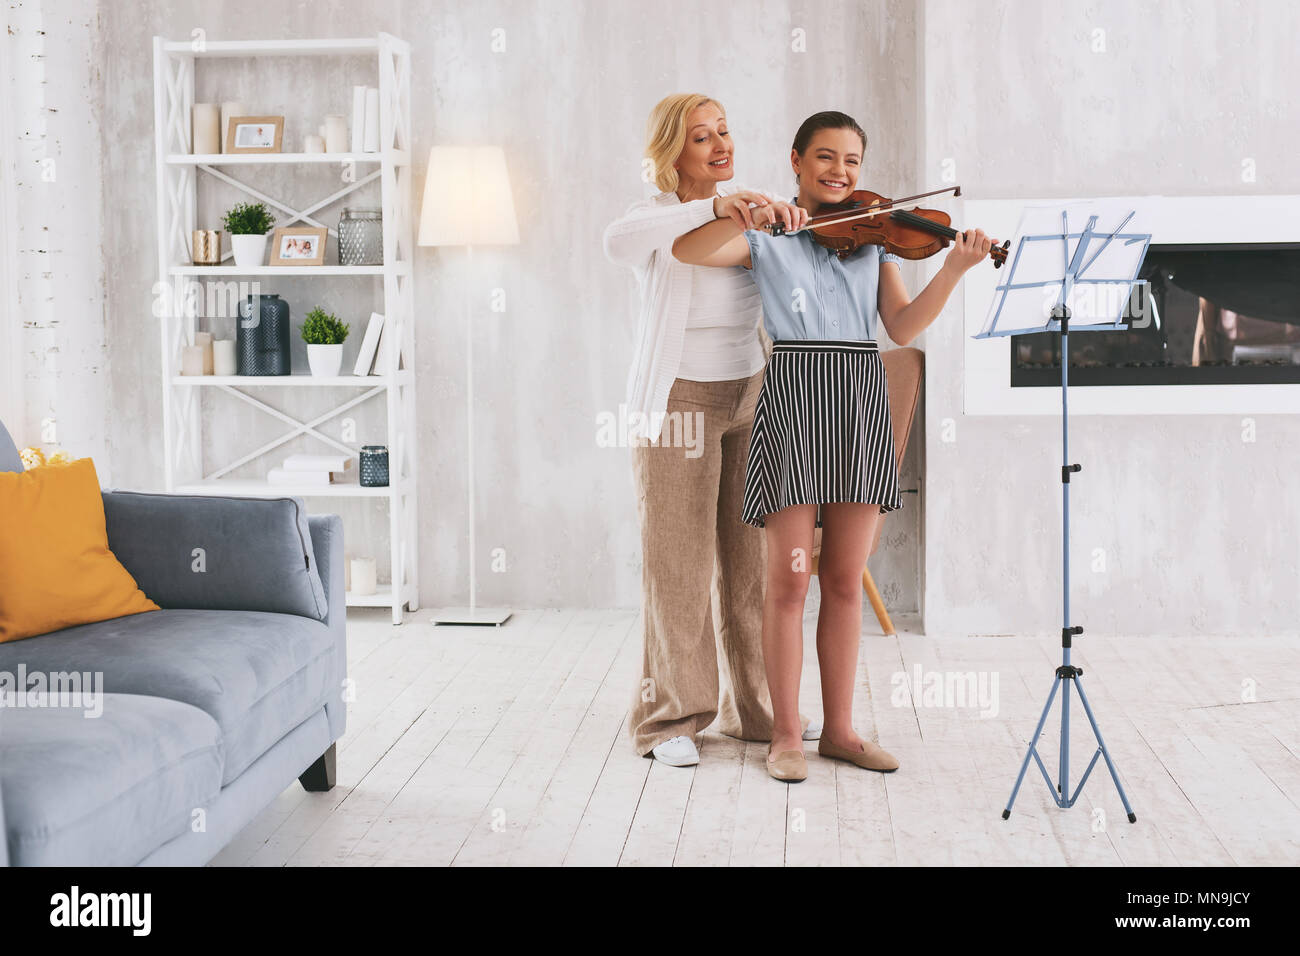 Delighted females enjoying classical music - Stock Image